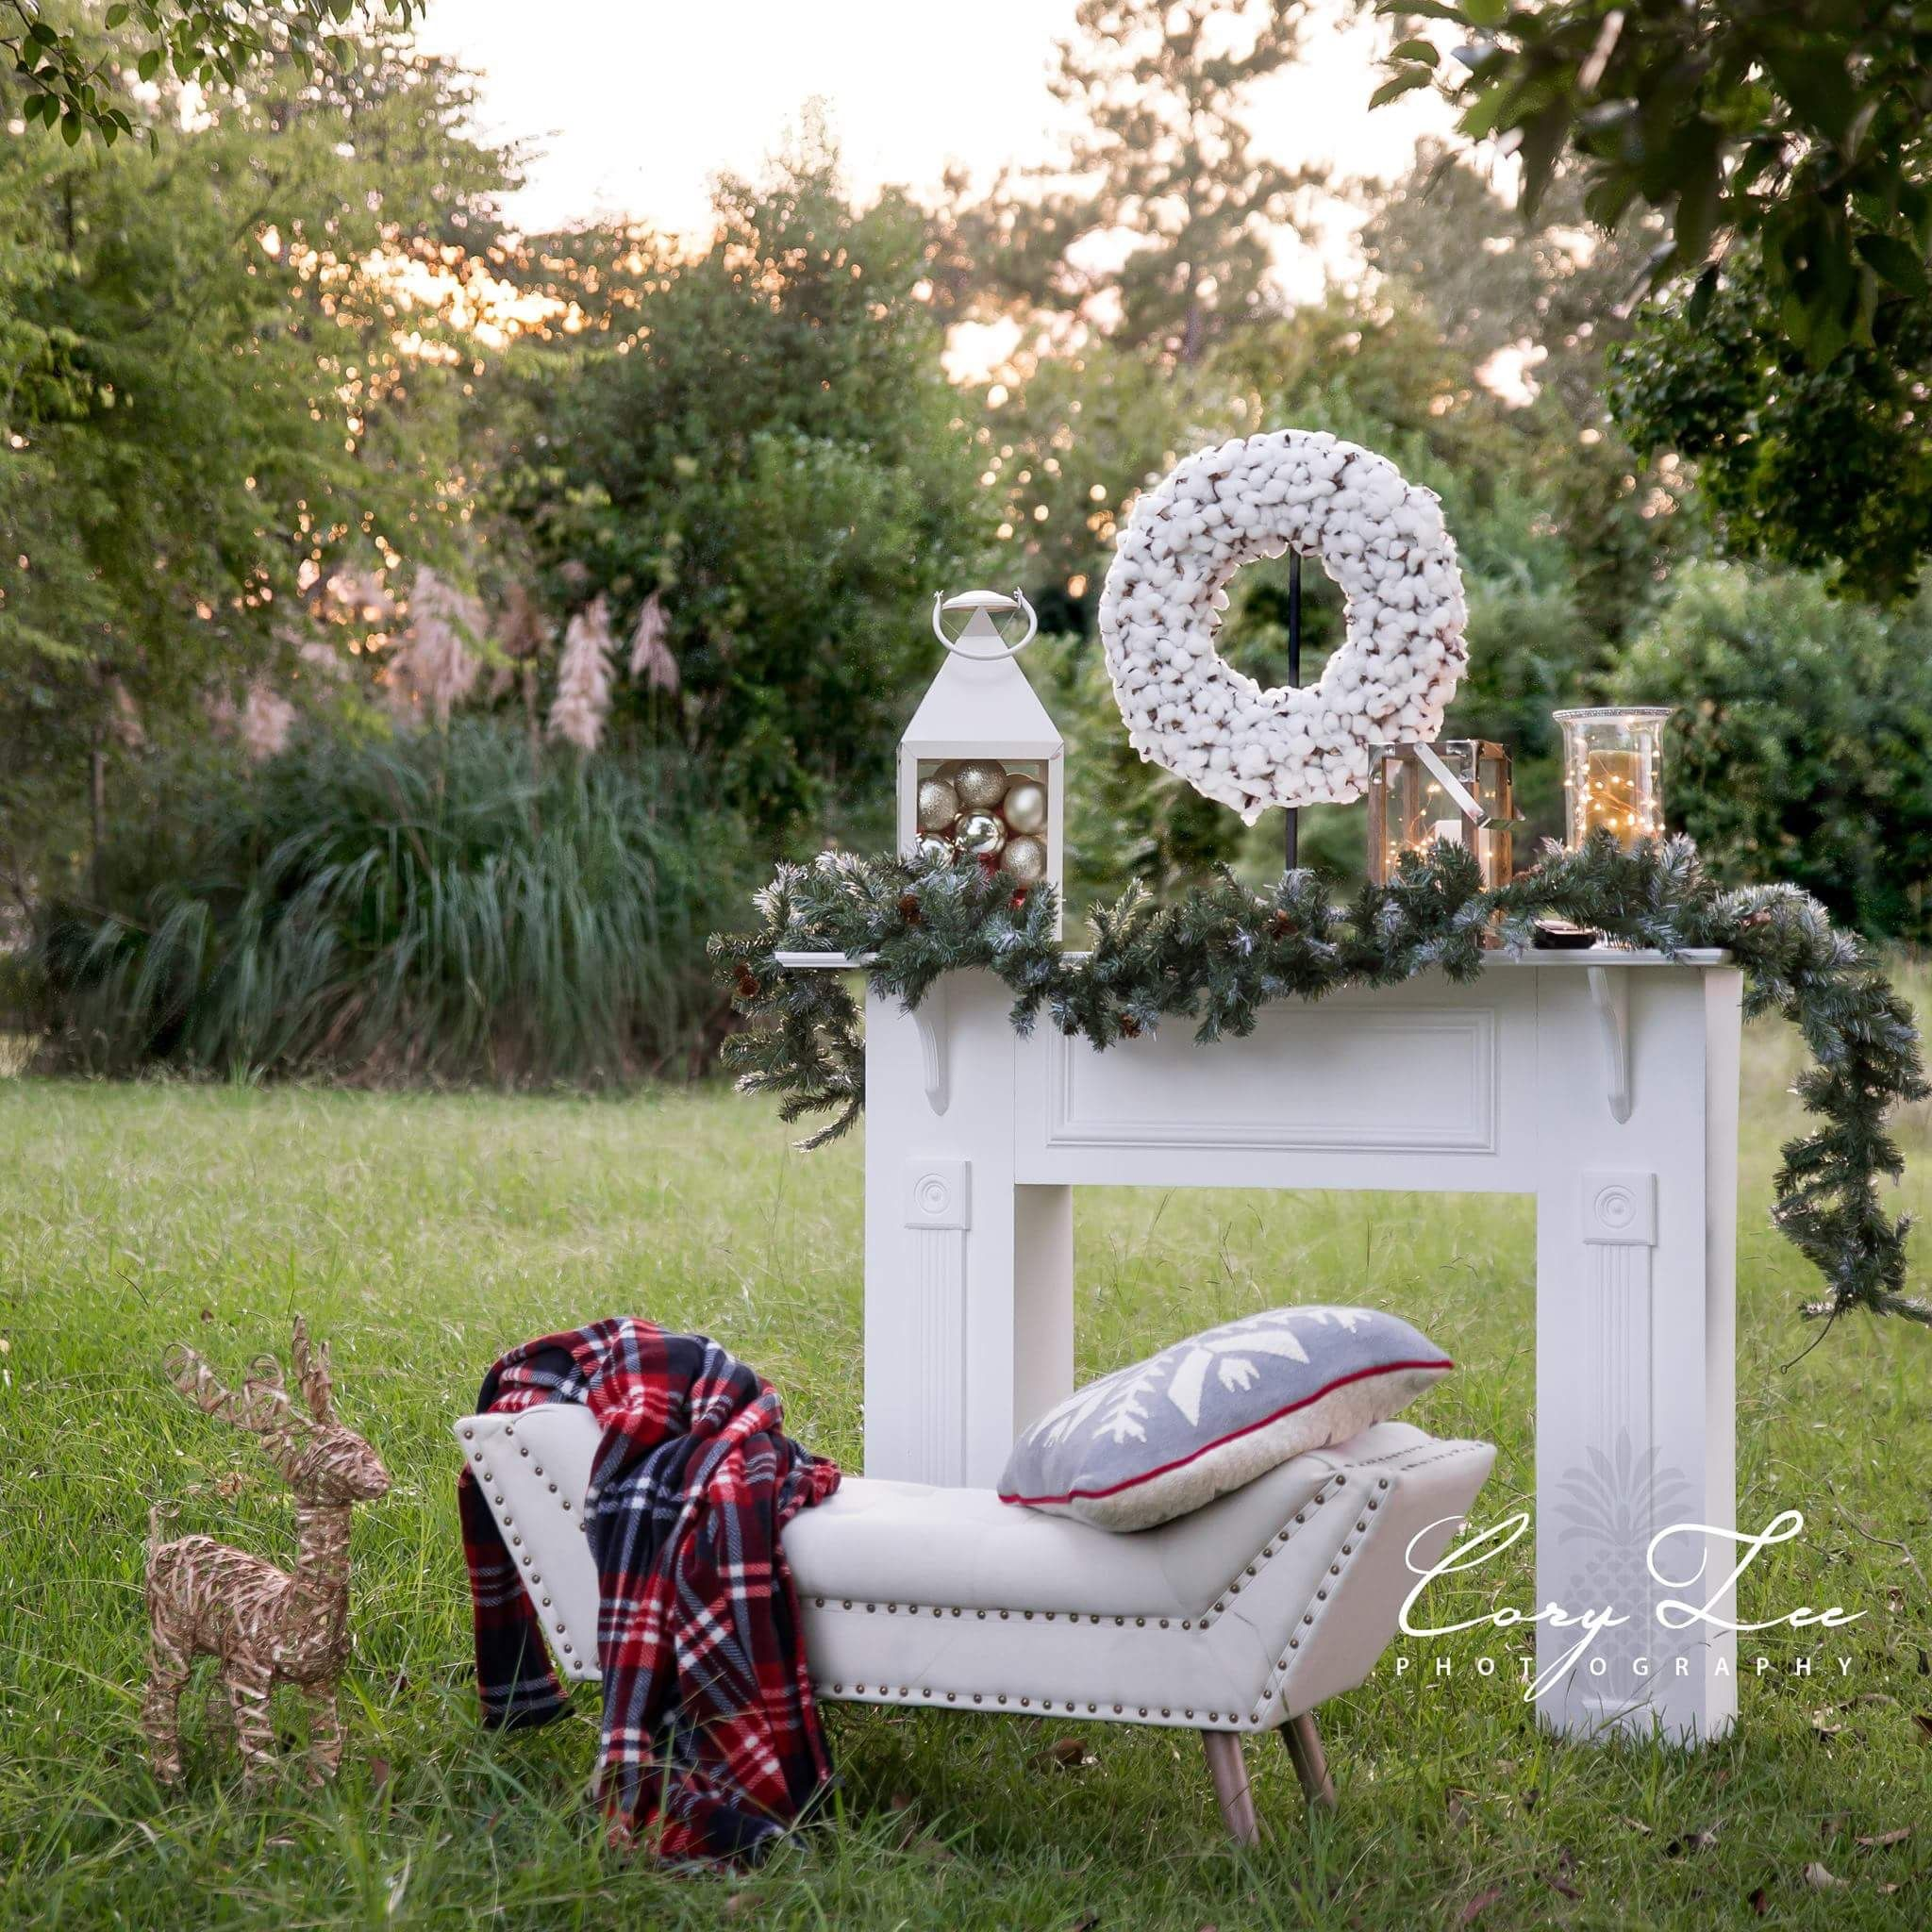 Christmas Picture Backdrop Ideas Christmas Mini Session By Cory Lee Photography Fireplace